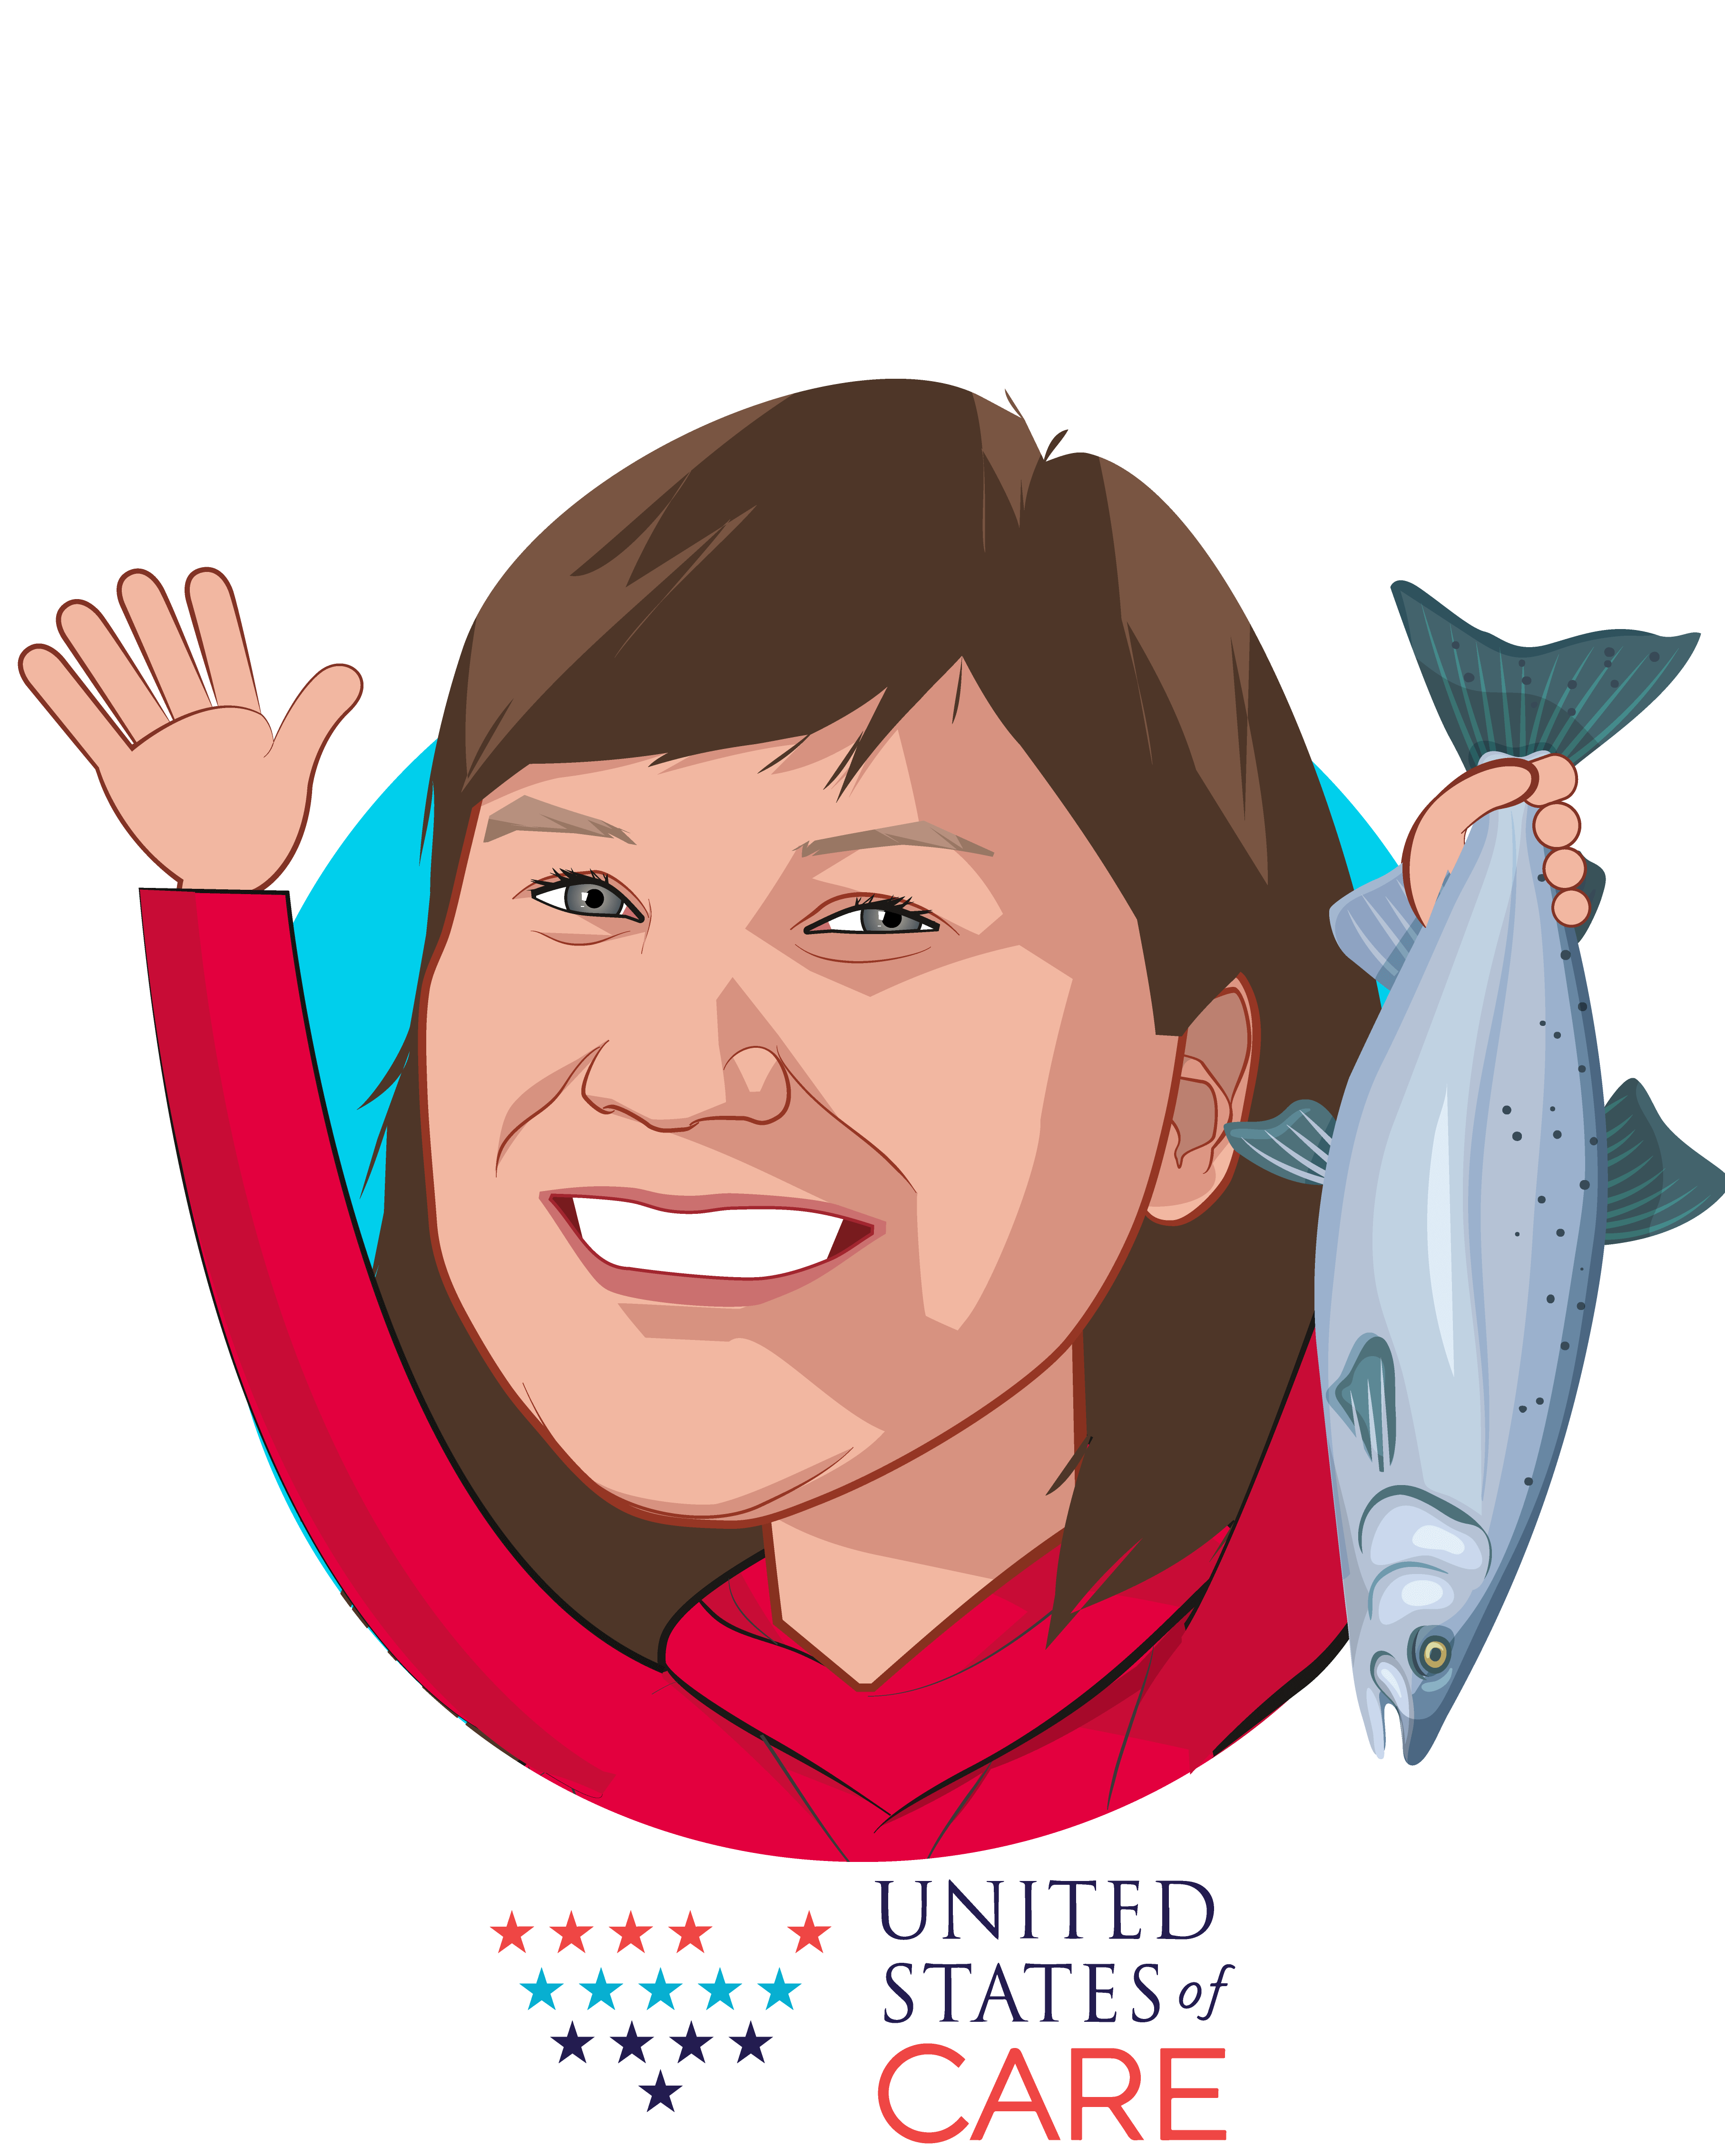 Overlay caricature of Valerie Nurr'araaluk Davidson, who is speaking at HLTH and is Founder's Council Member at United States of Care